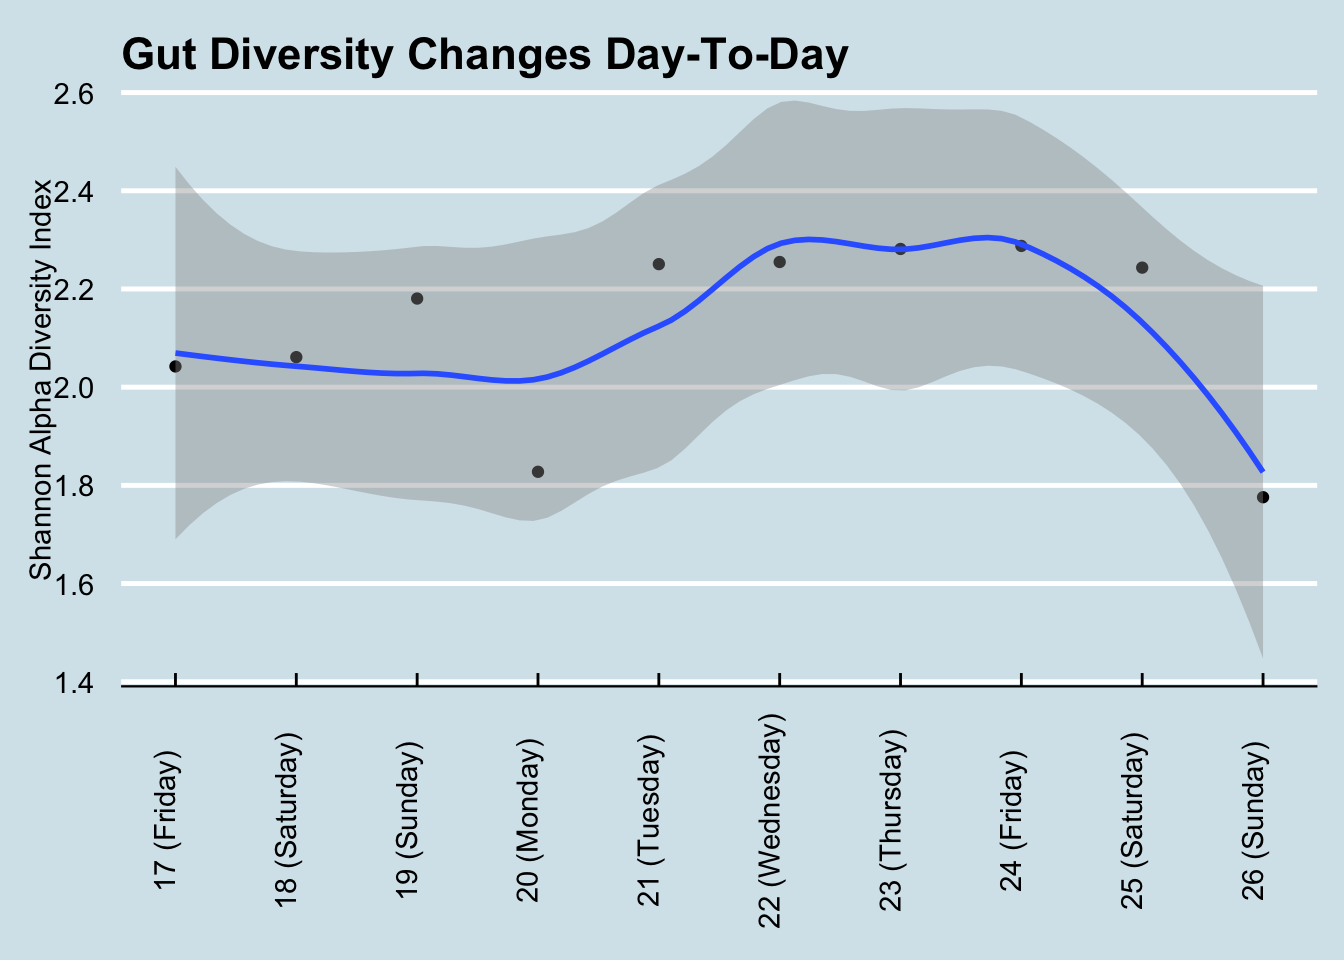 Diversity changes significantly day-to-day.